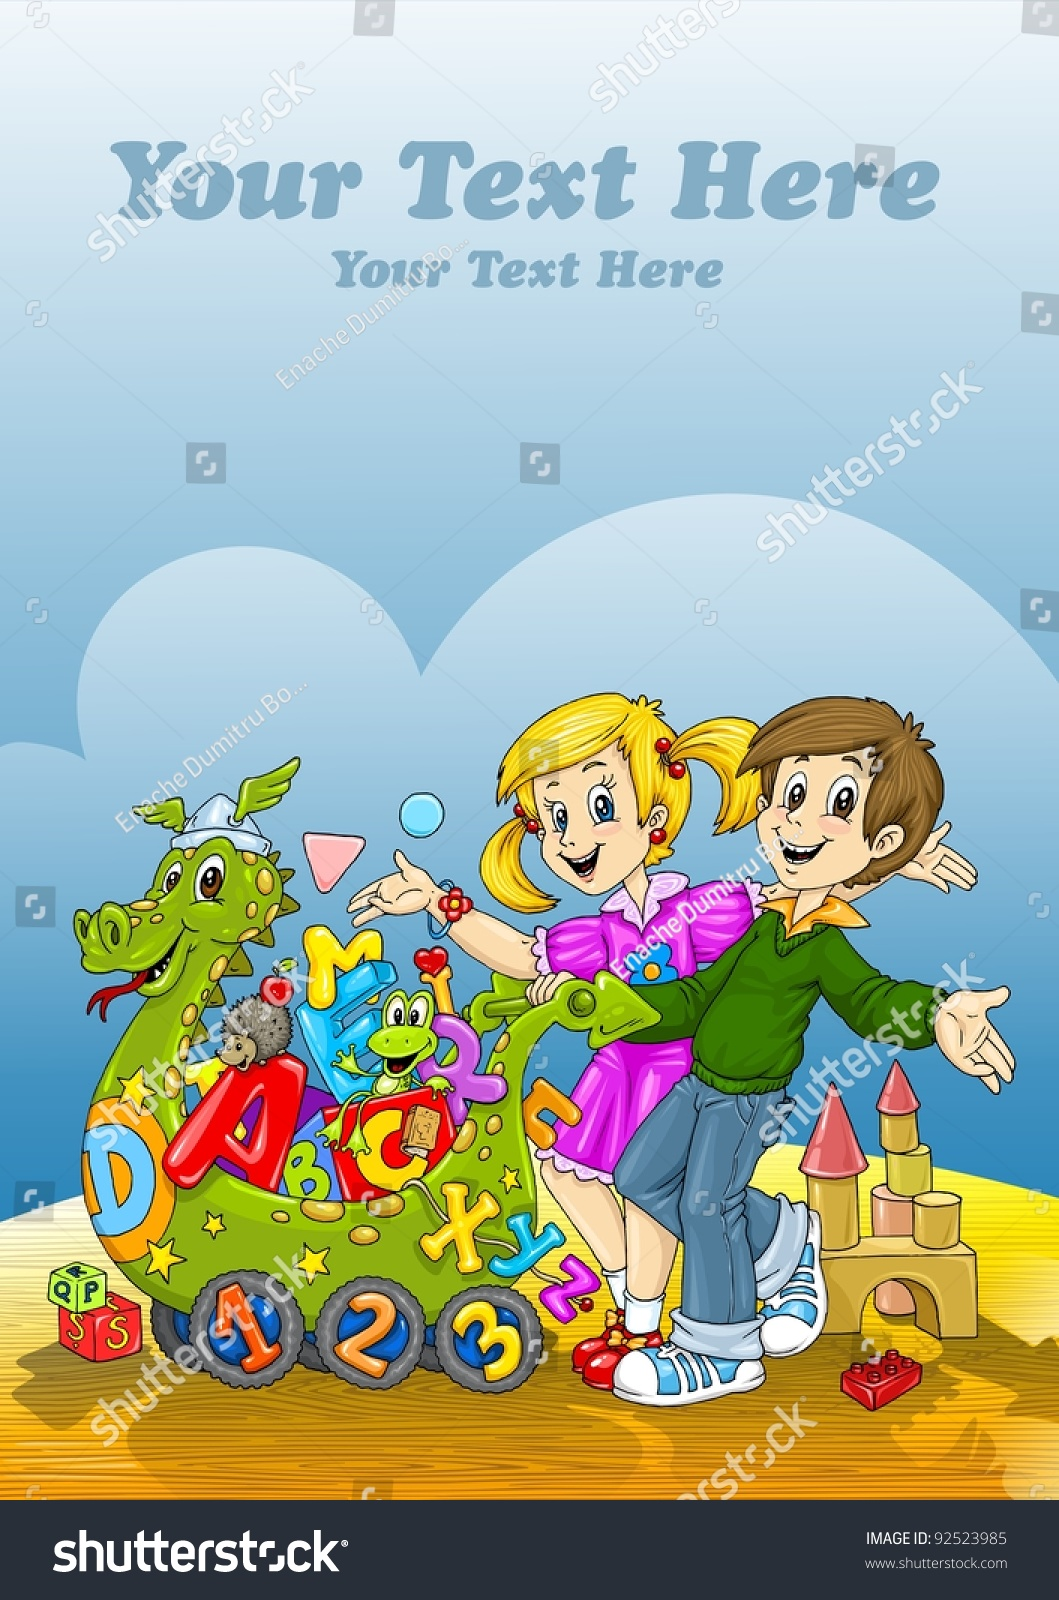 Children S Book Cover Template : Happy kids toys world book cover stock illustration